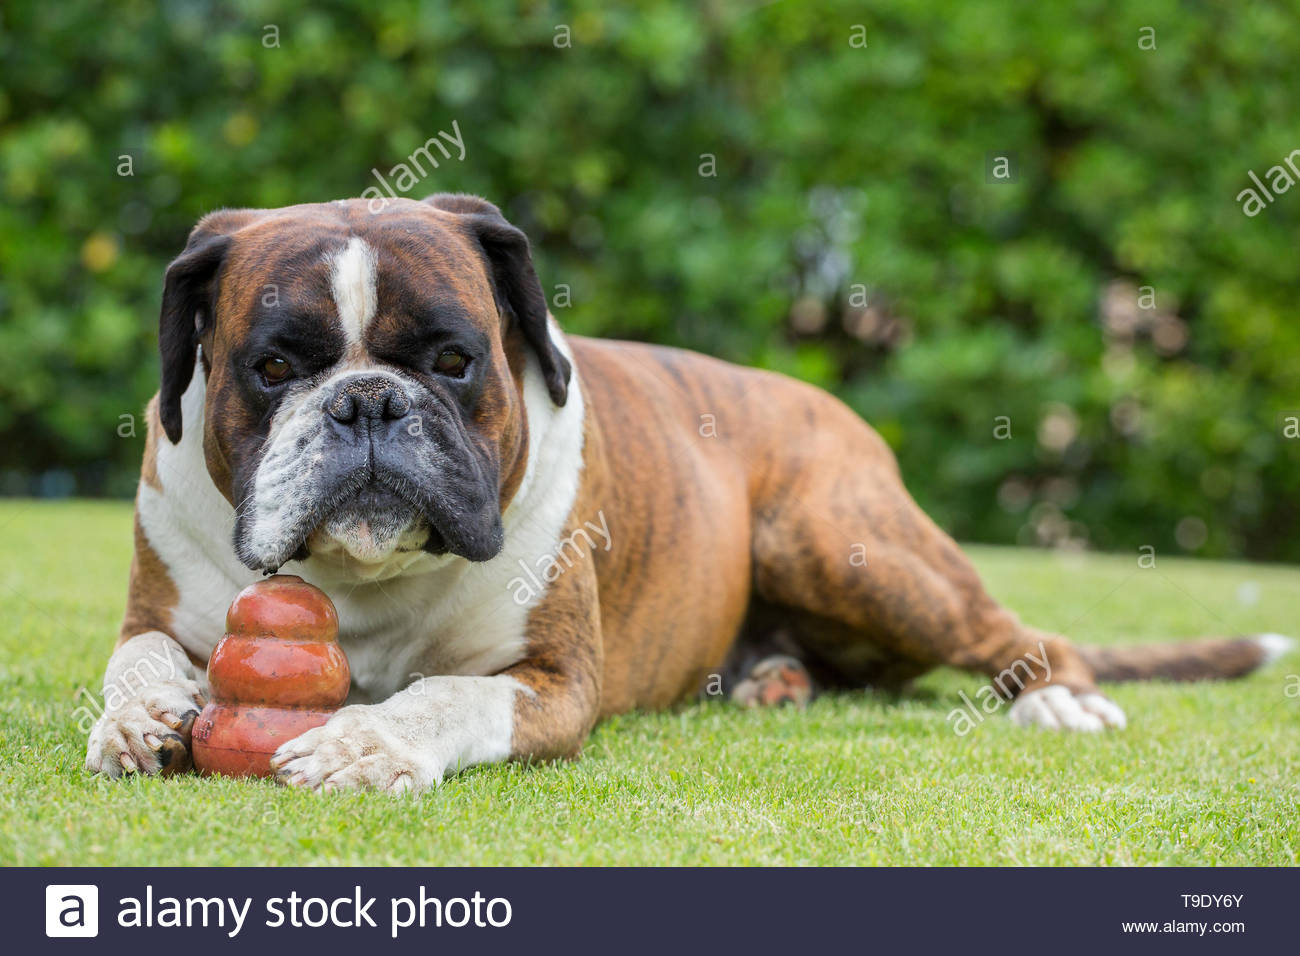 Boxer dog sitting on a green field, Italy - Stock Image